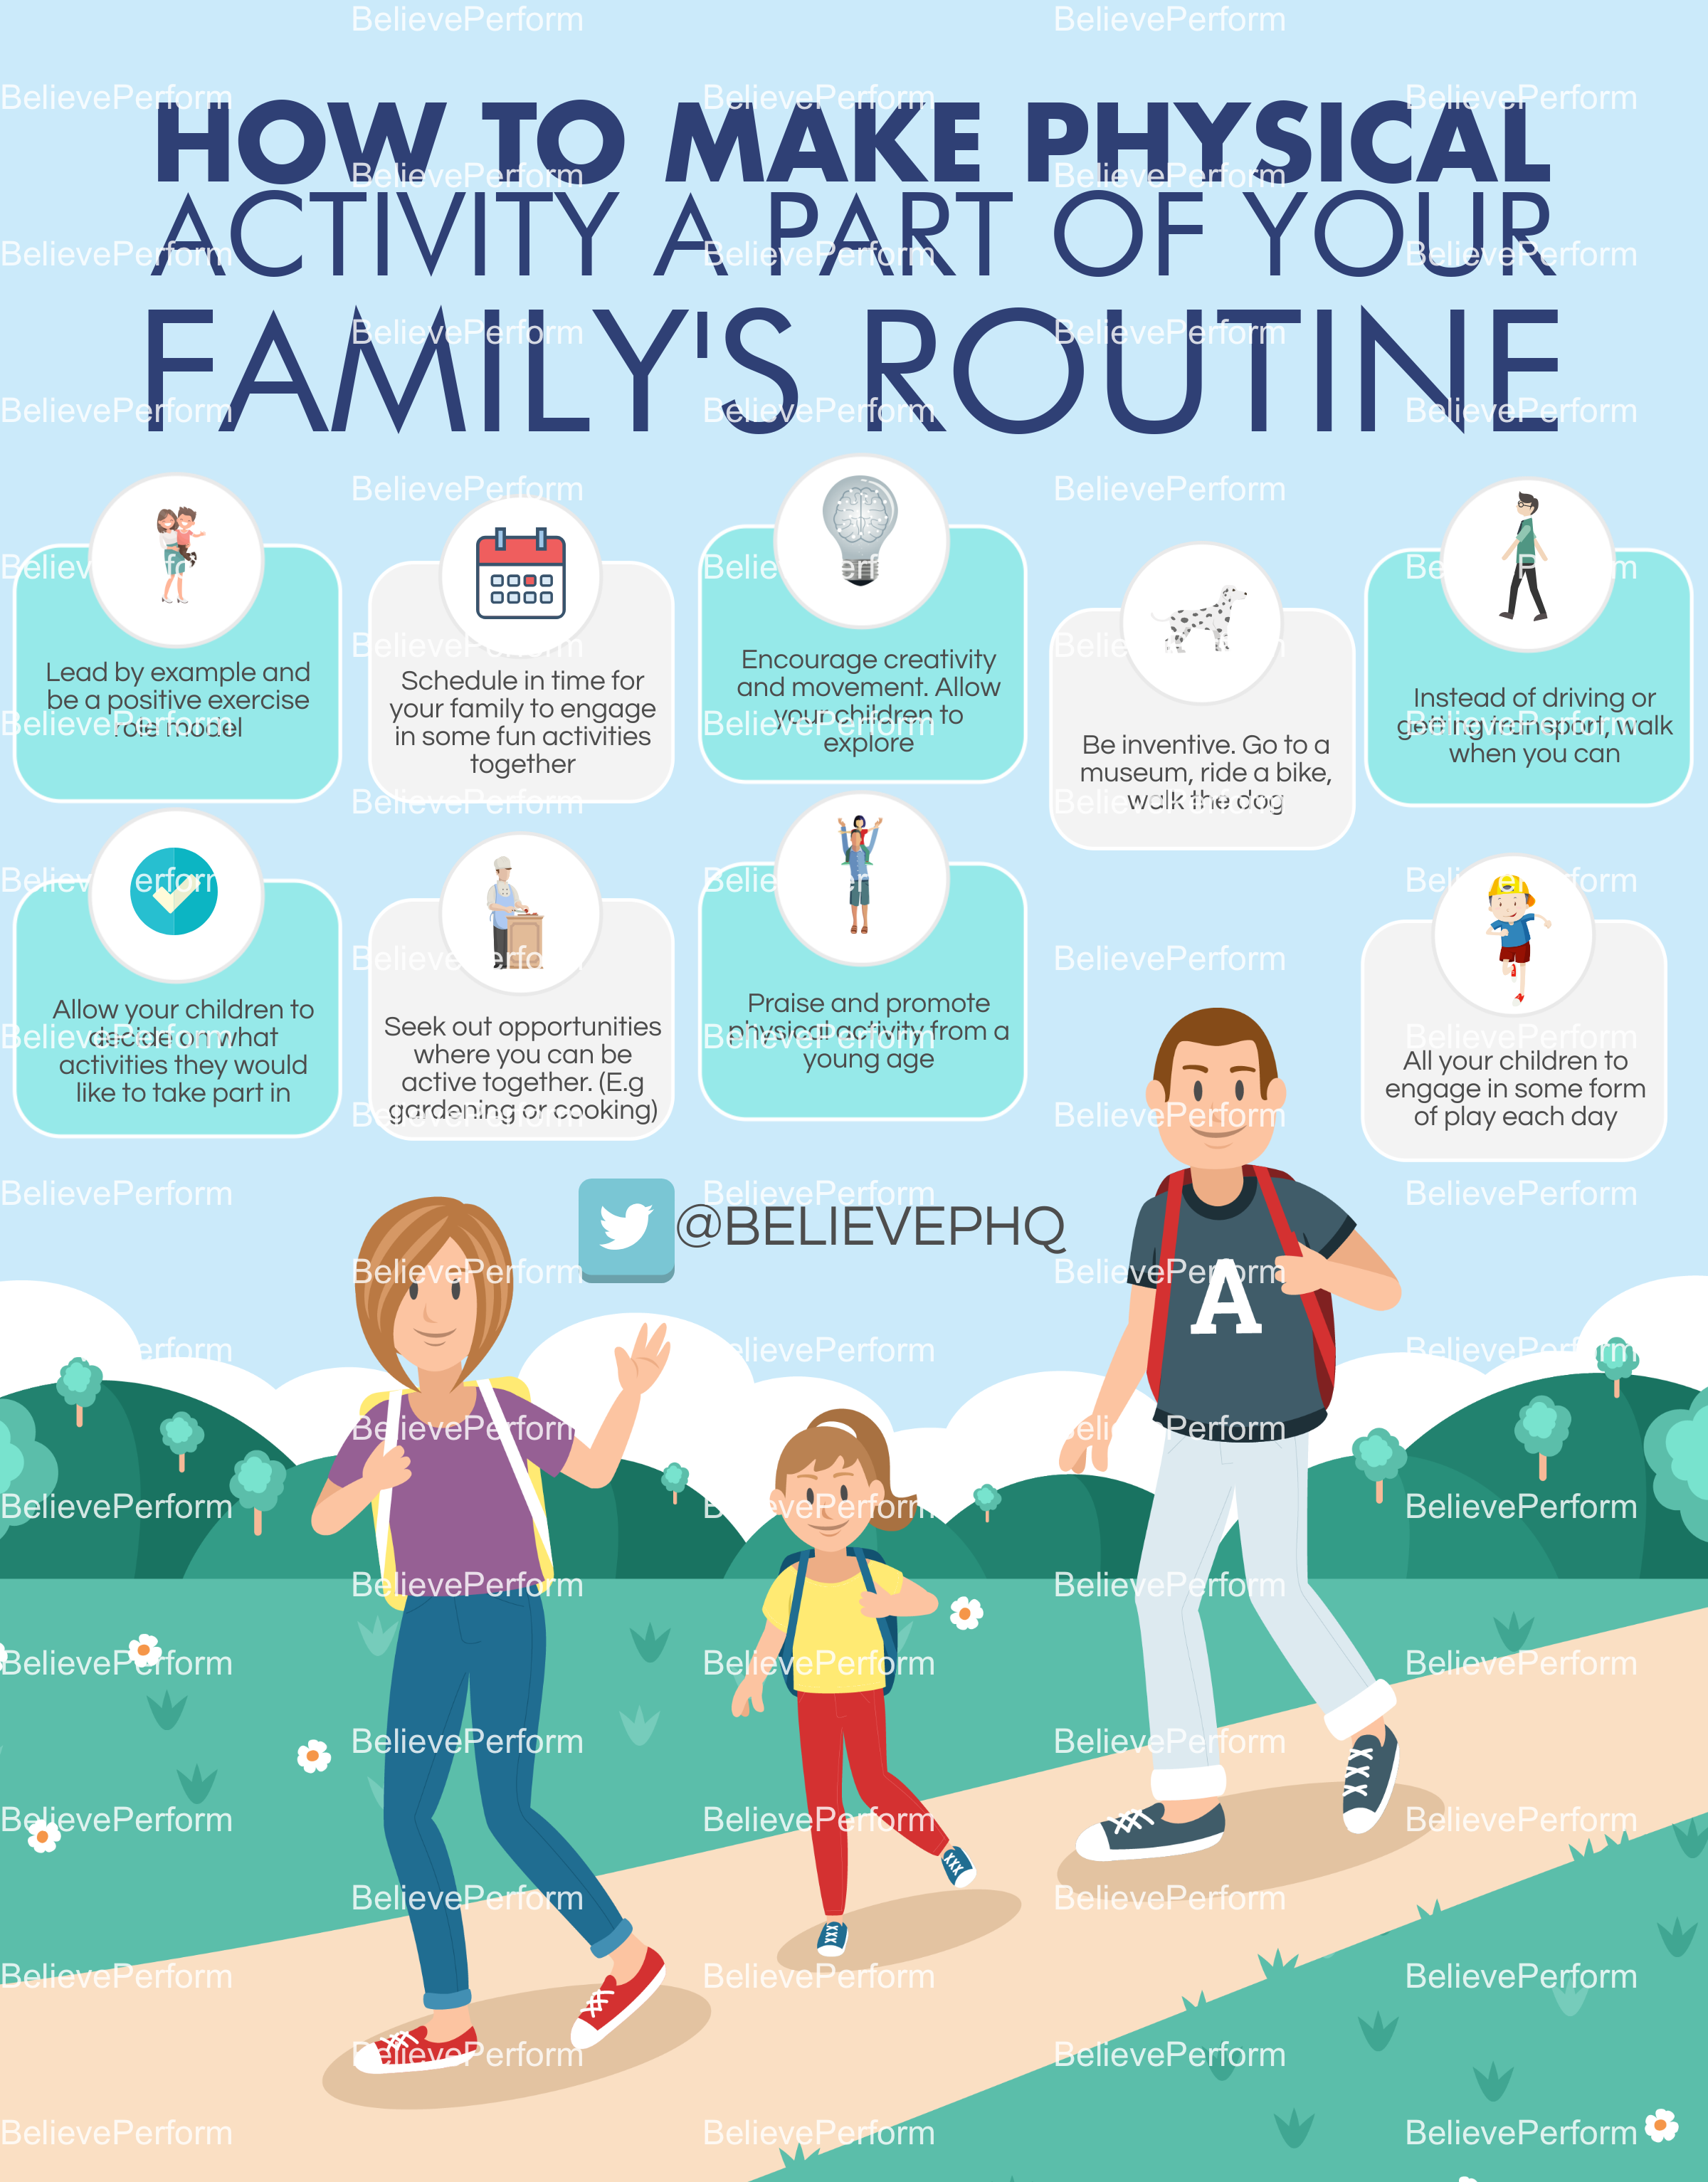 How to make physical activity a part of your family's routine